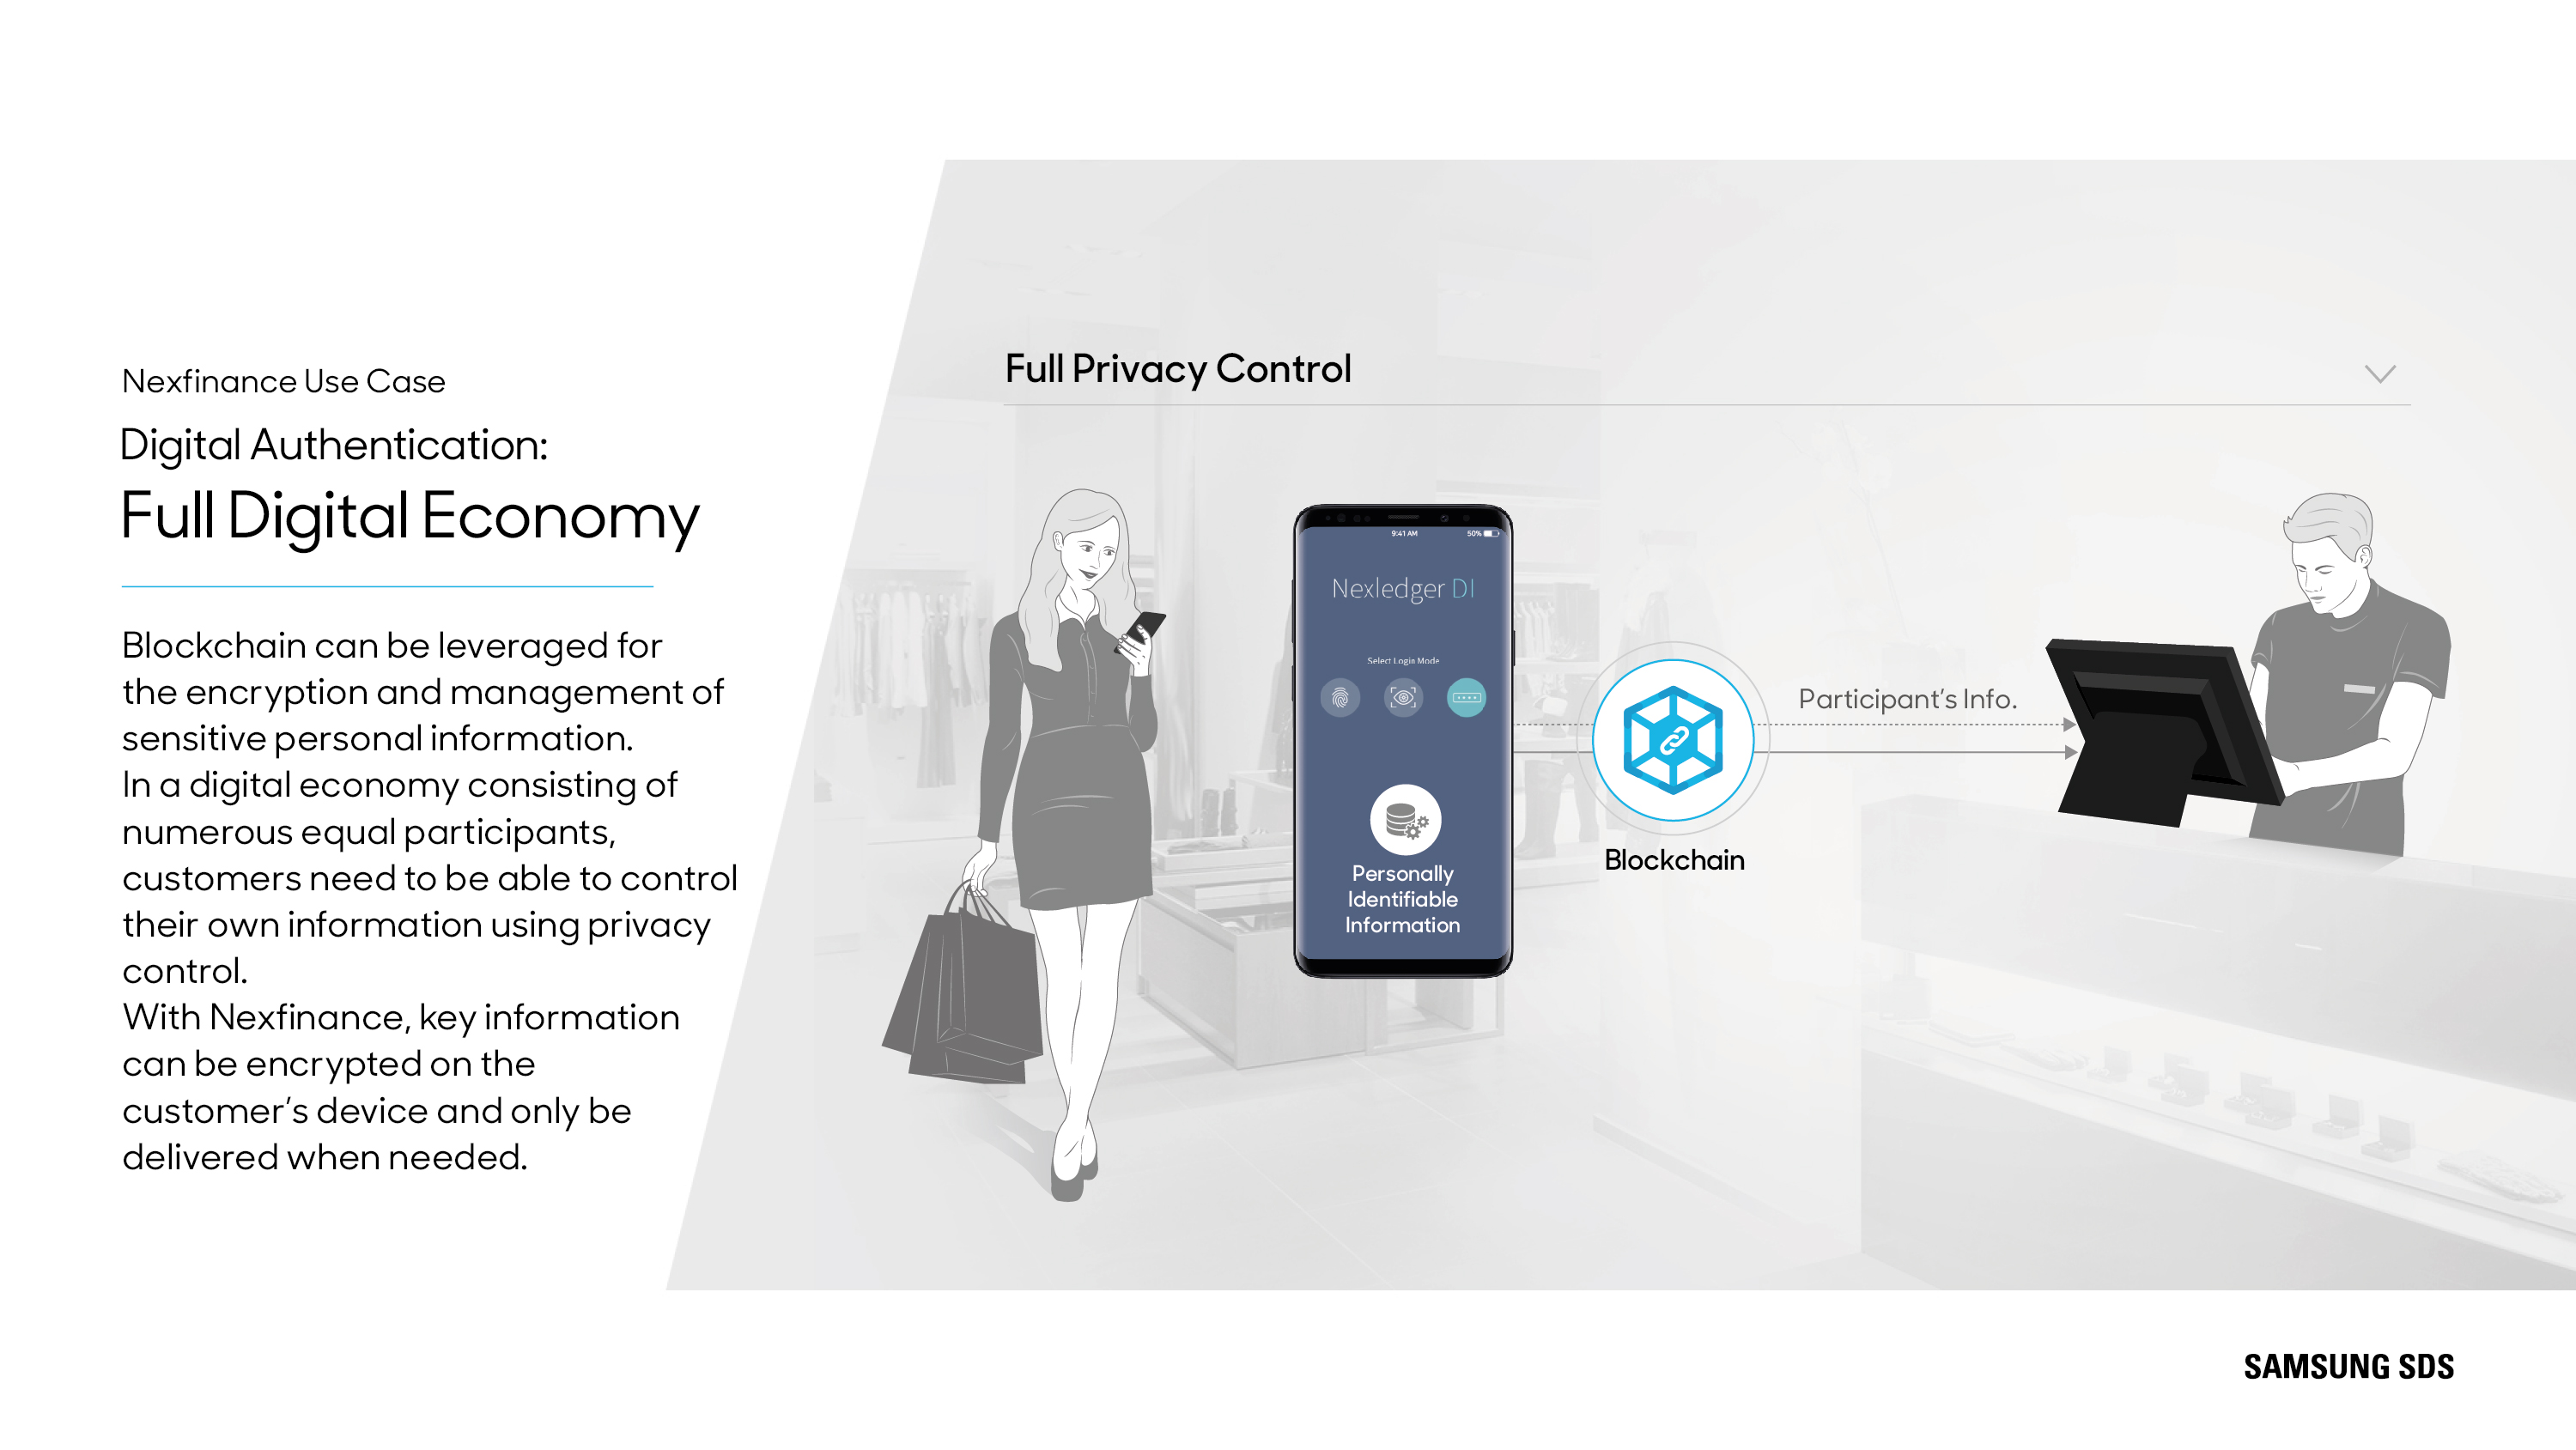 Full Digital Economy Blockchain can be leveraged for the encryption and management of sensitive personal information. In a digital economy consisting of numerous equal participants, customers need to be able to control their own information using privacy control. With Nexfinance, key information can be encrypted on the customer's device and only be delivered when needed.